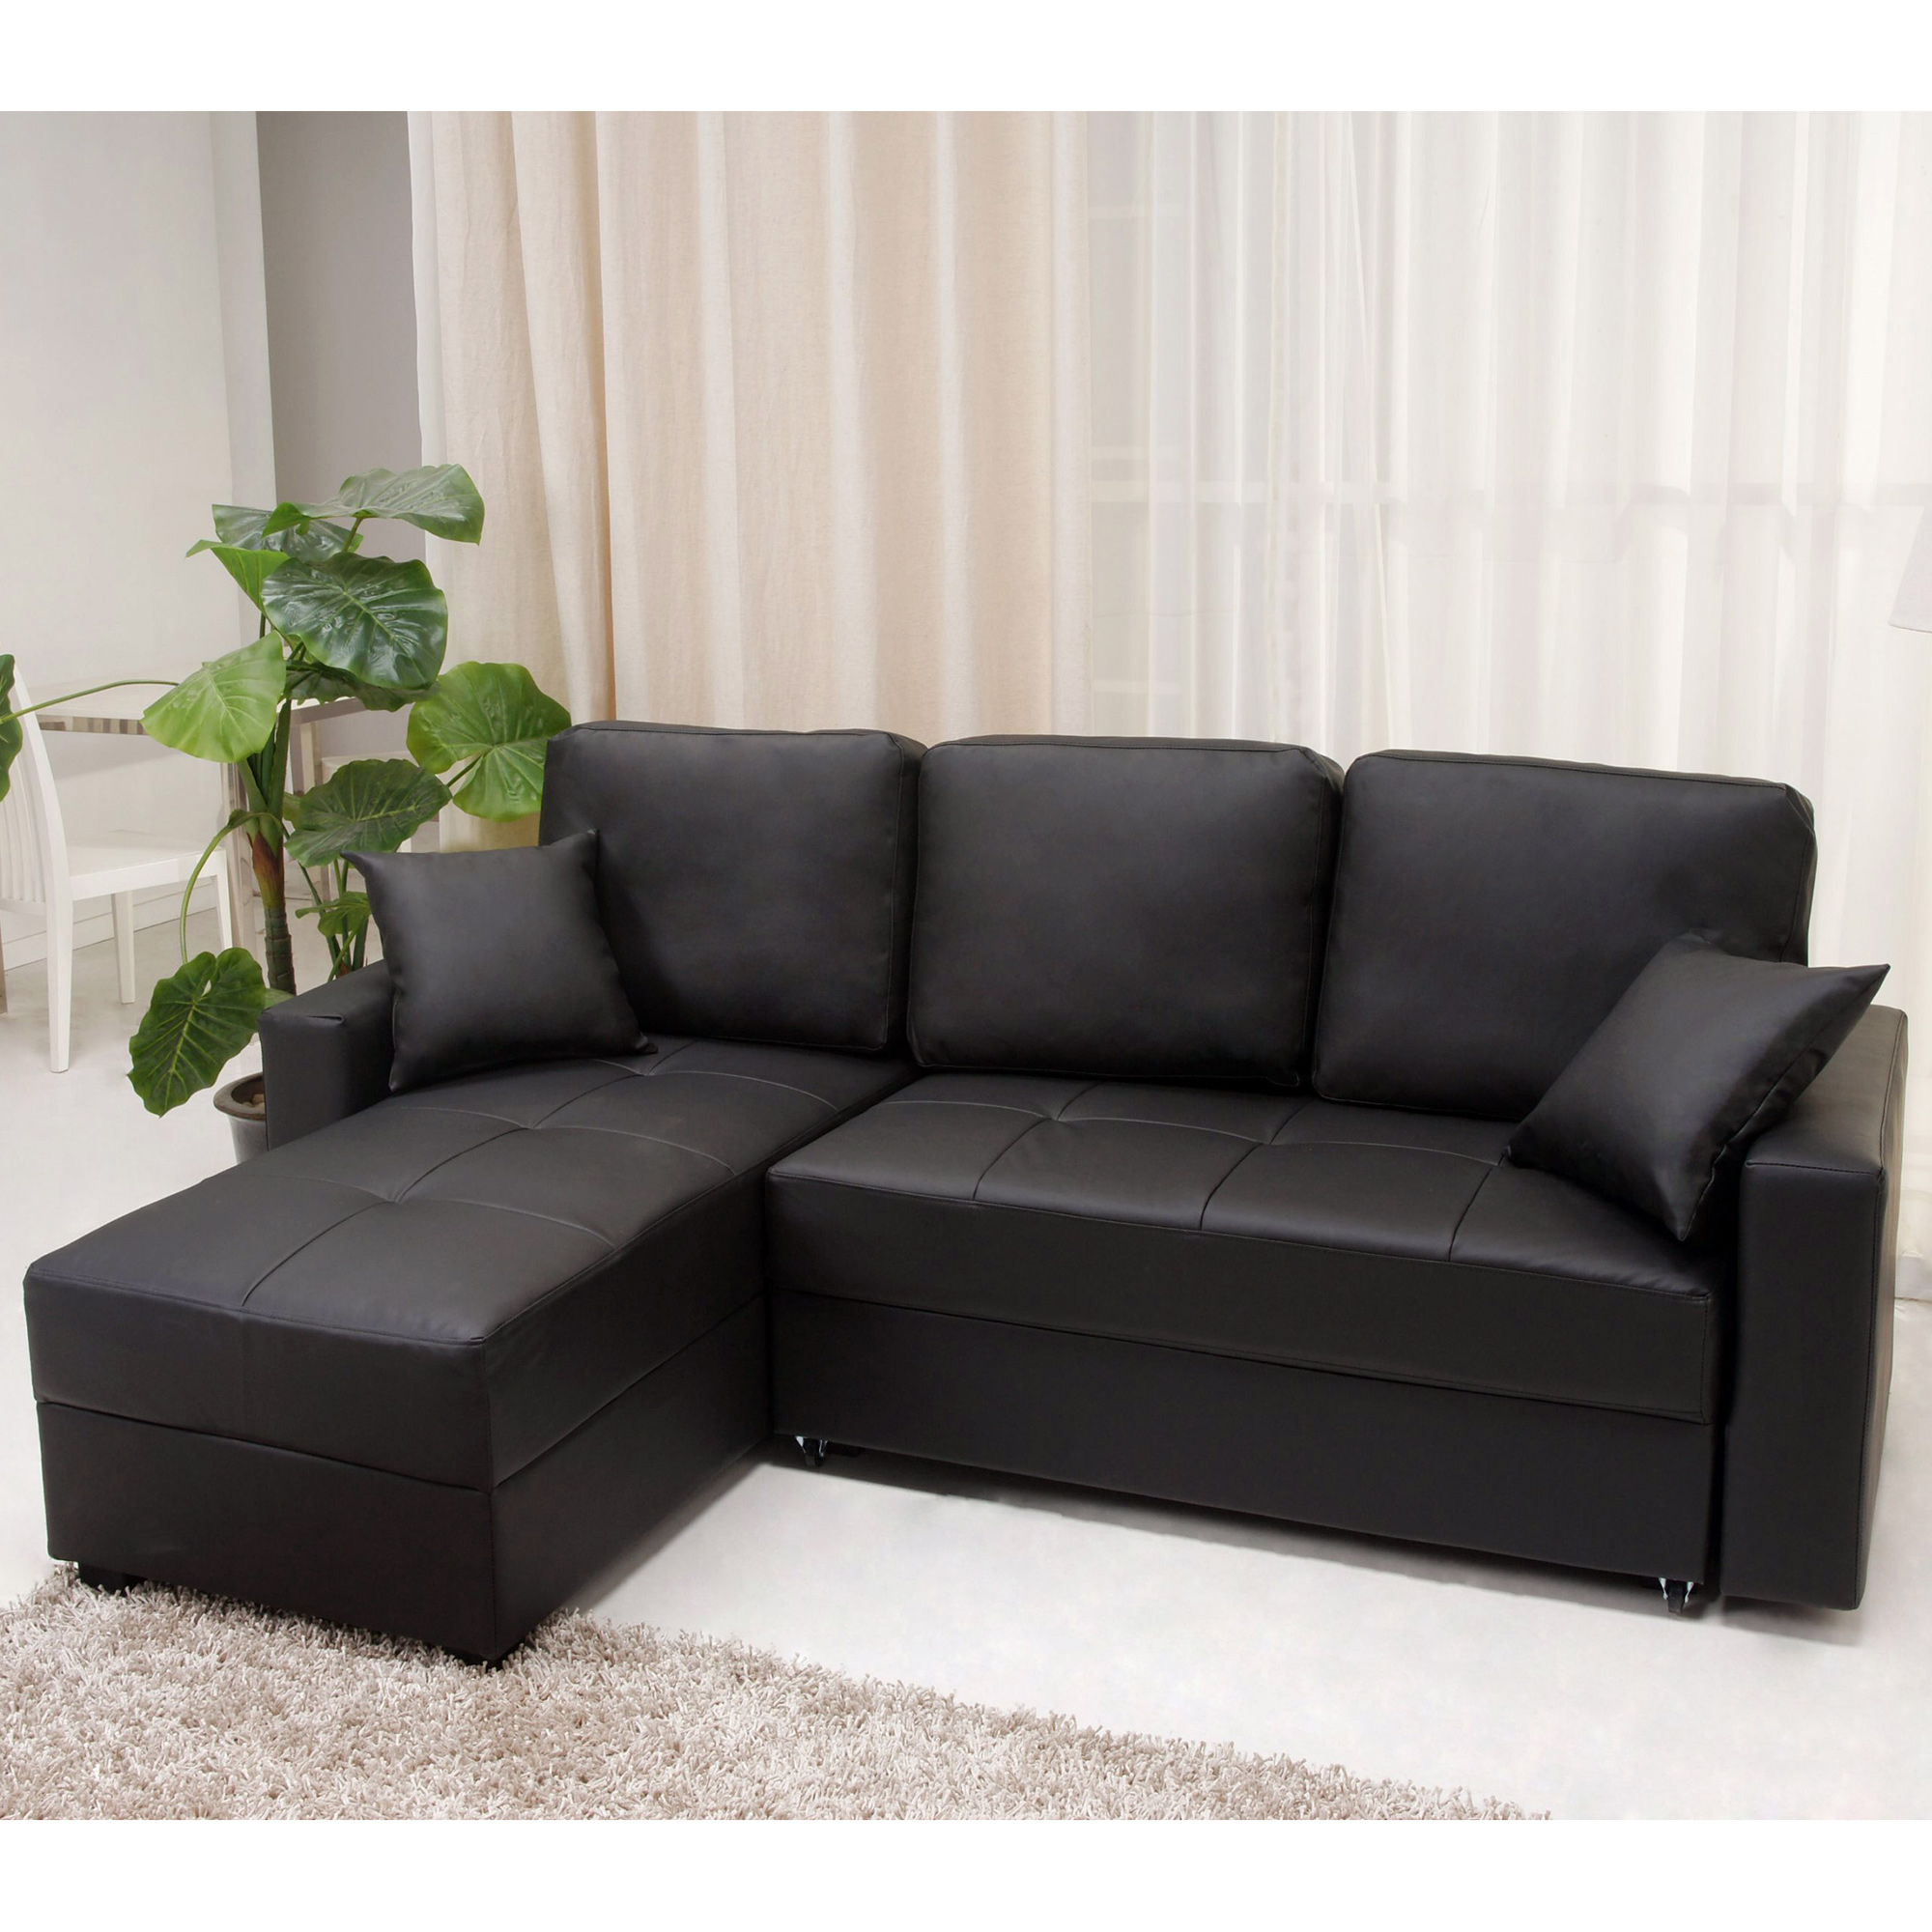 nice black color sectional sofa covers